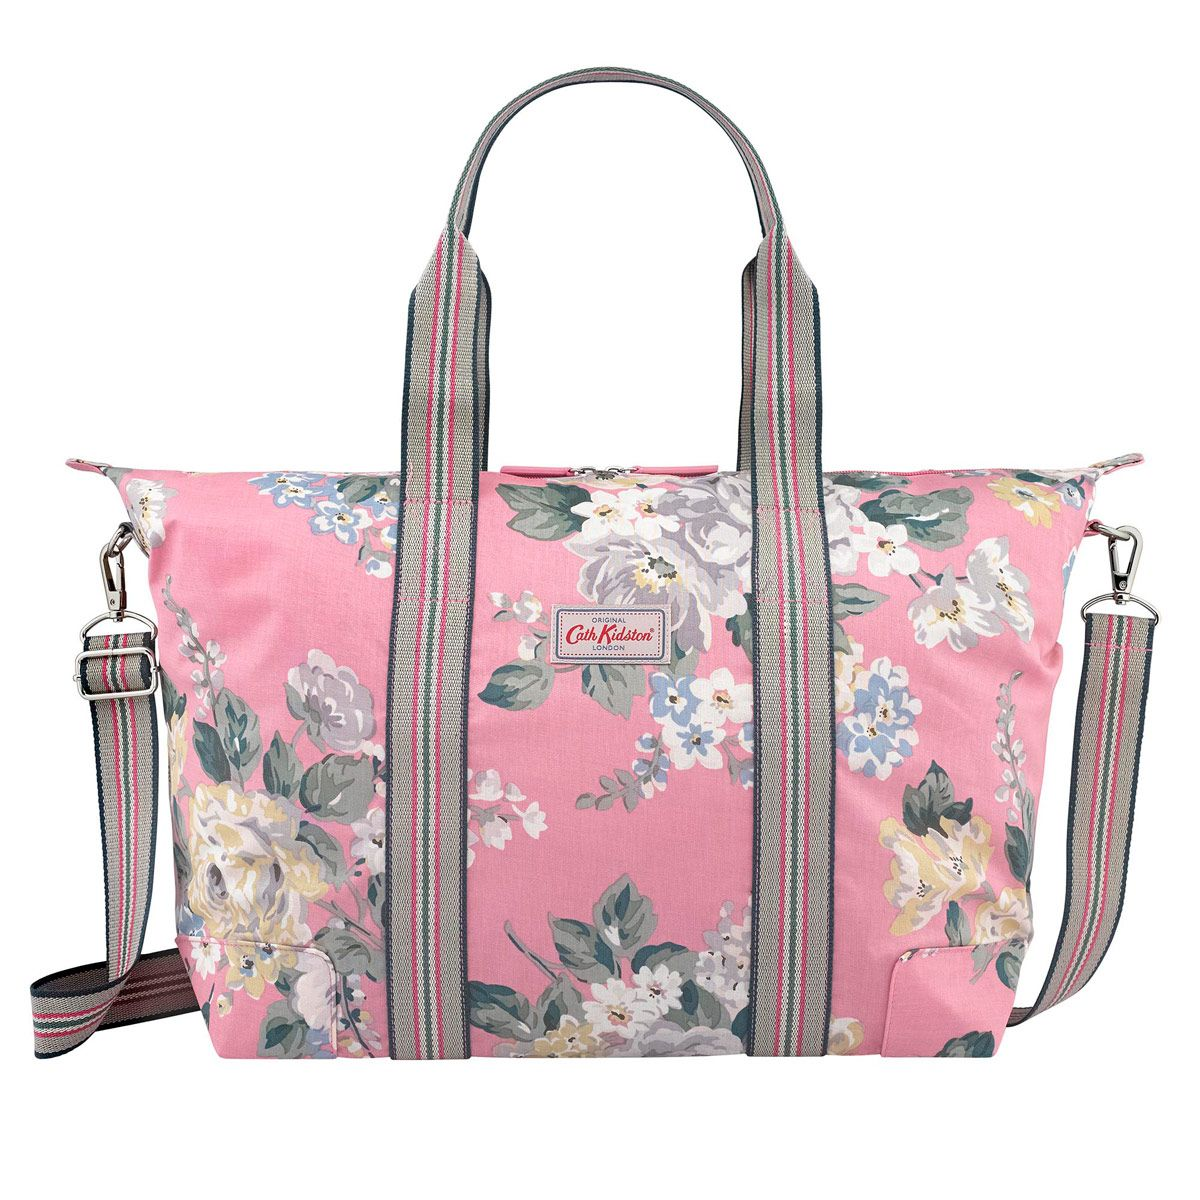 Cath kidston taxis kentish rose blue 180 piccadilly pretty norfolk rose foldaway overnight bag norfolk rose cathkidston doublecrazyfo Images